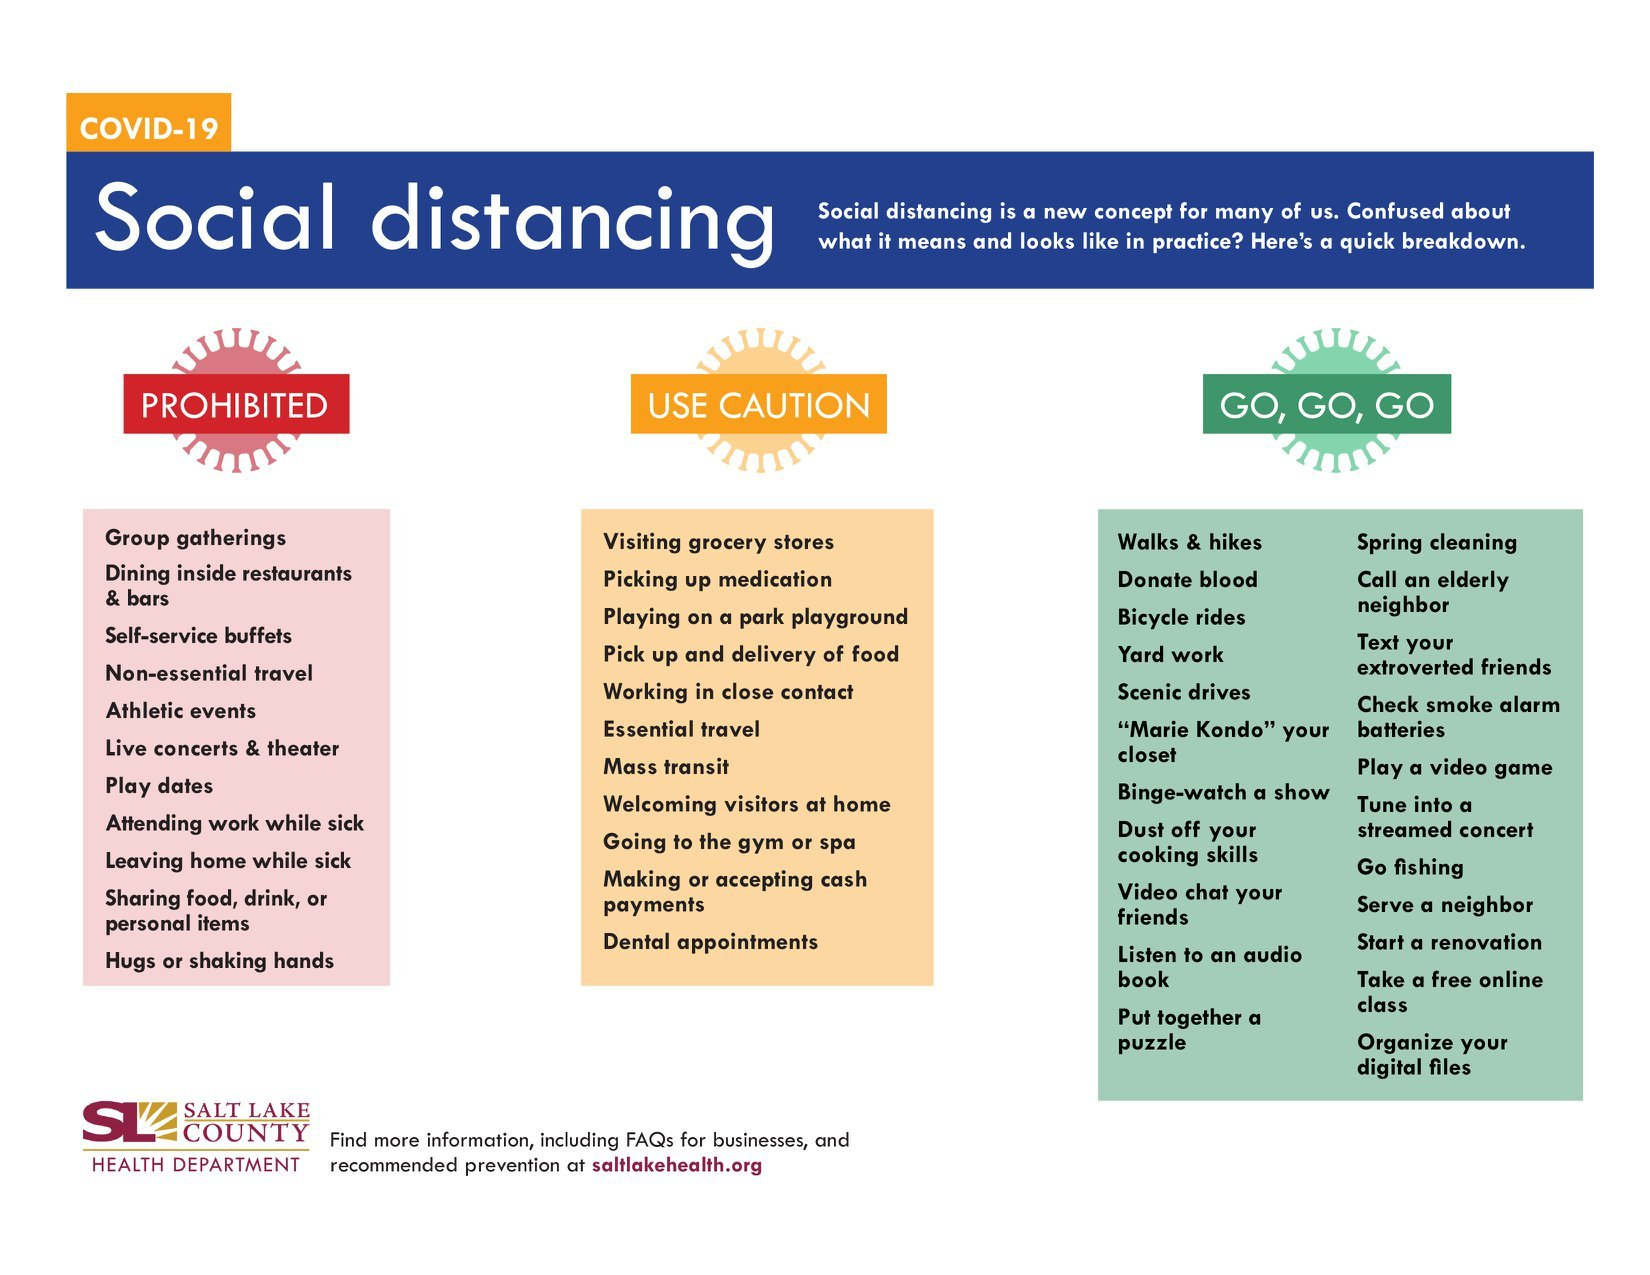 Social distancing activities and ideas: Which are OK and which are prohibited?